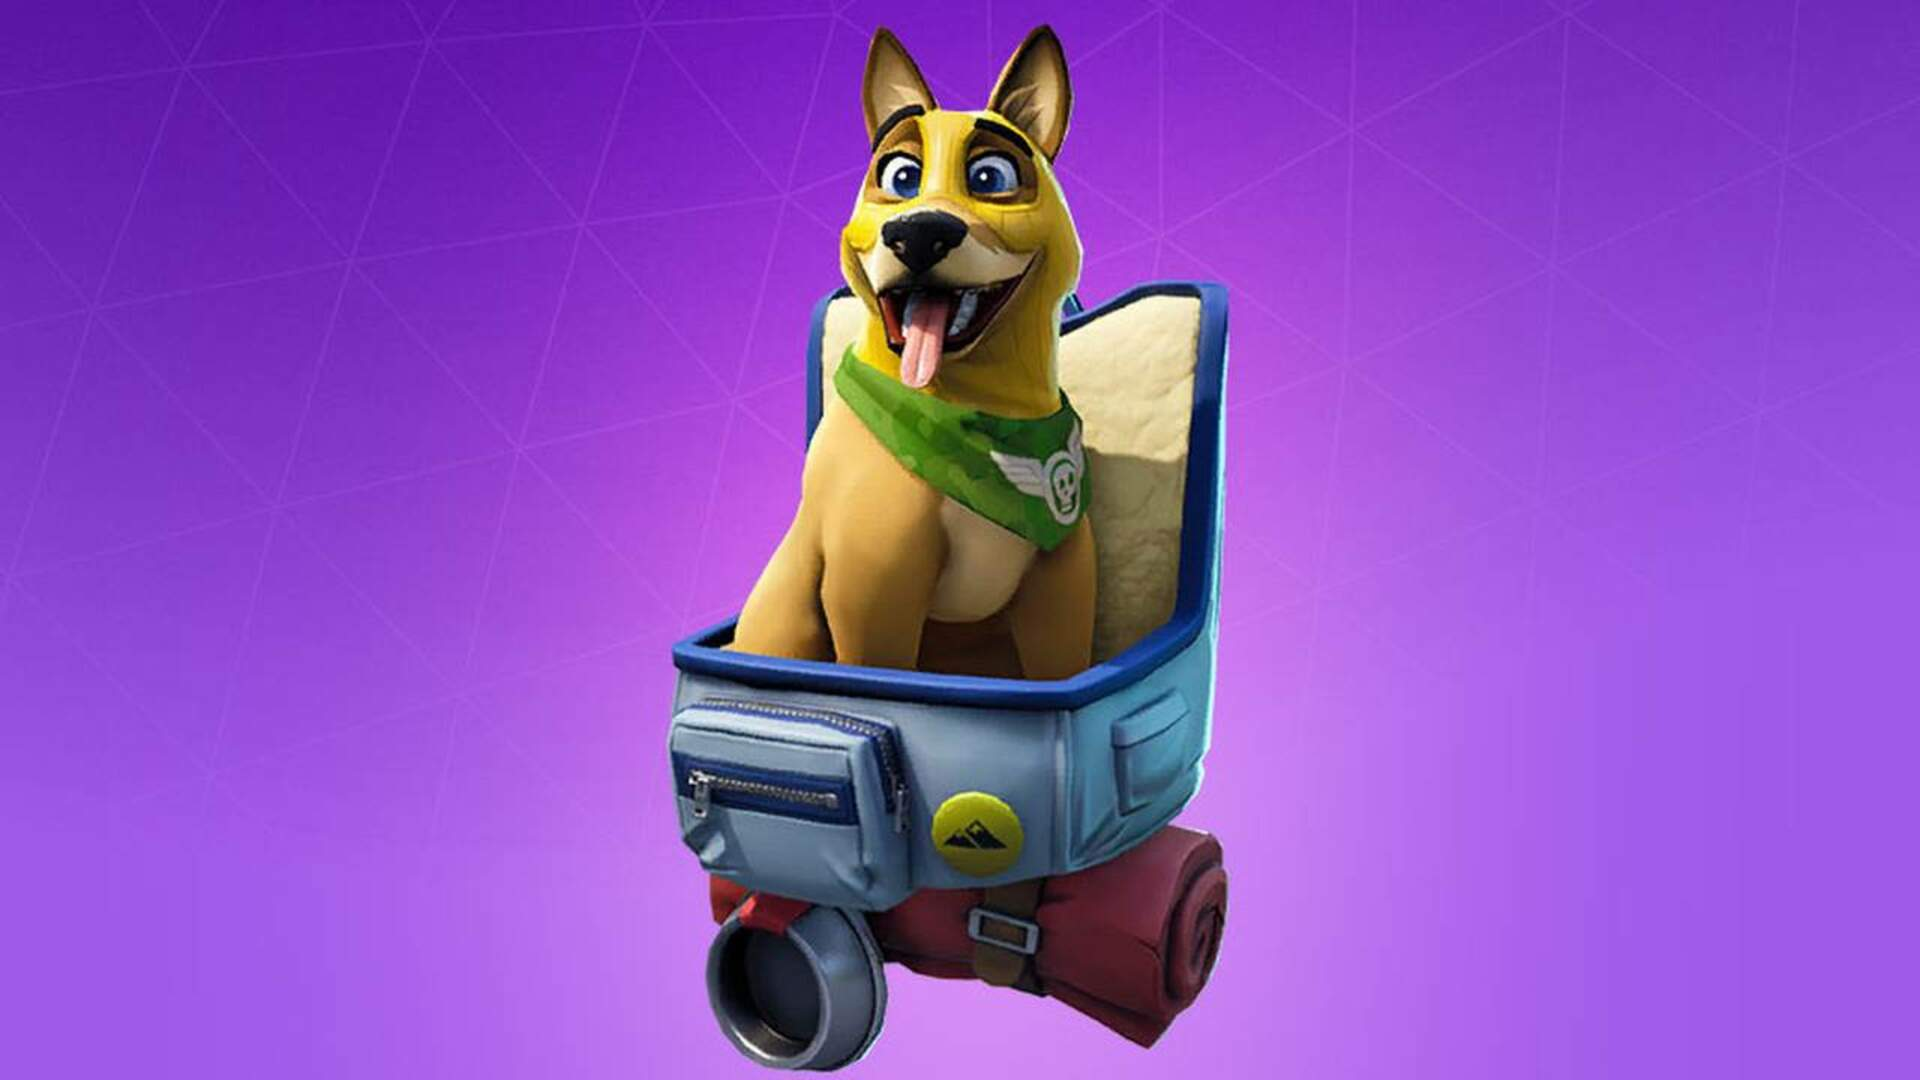 Epic Will Pull Fortnite's Reskinned Battle Pass Pup and Issue Refunds